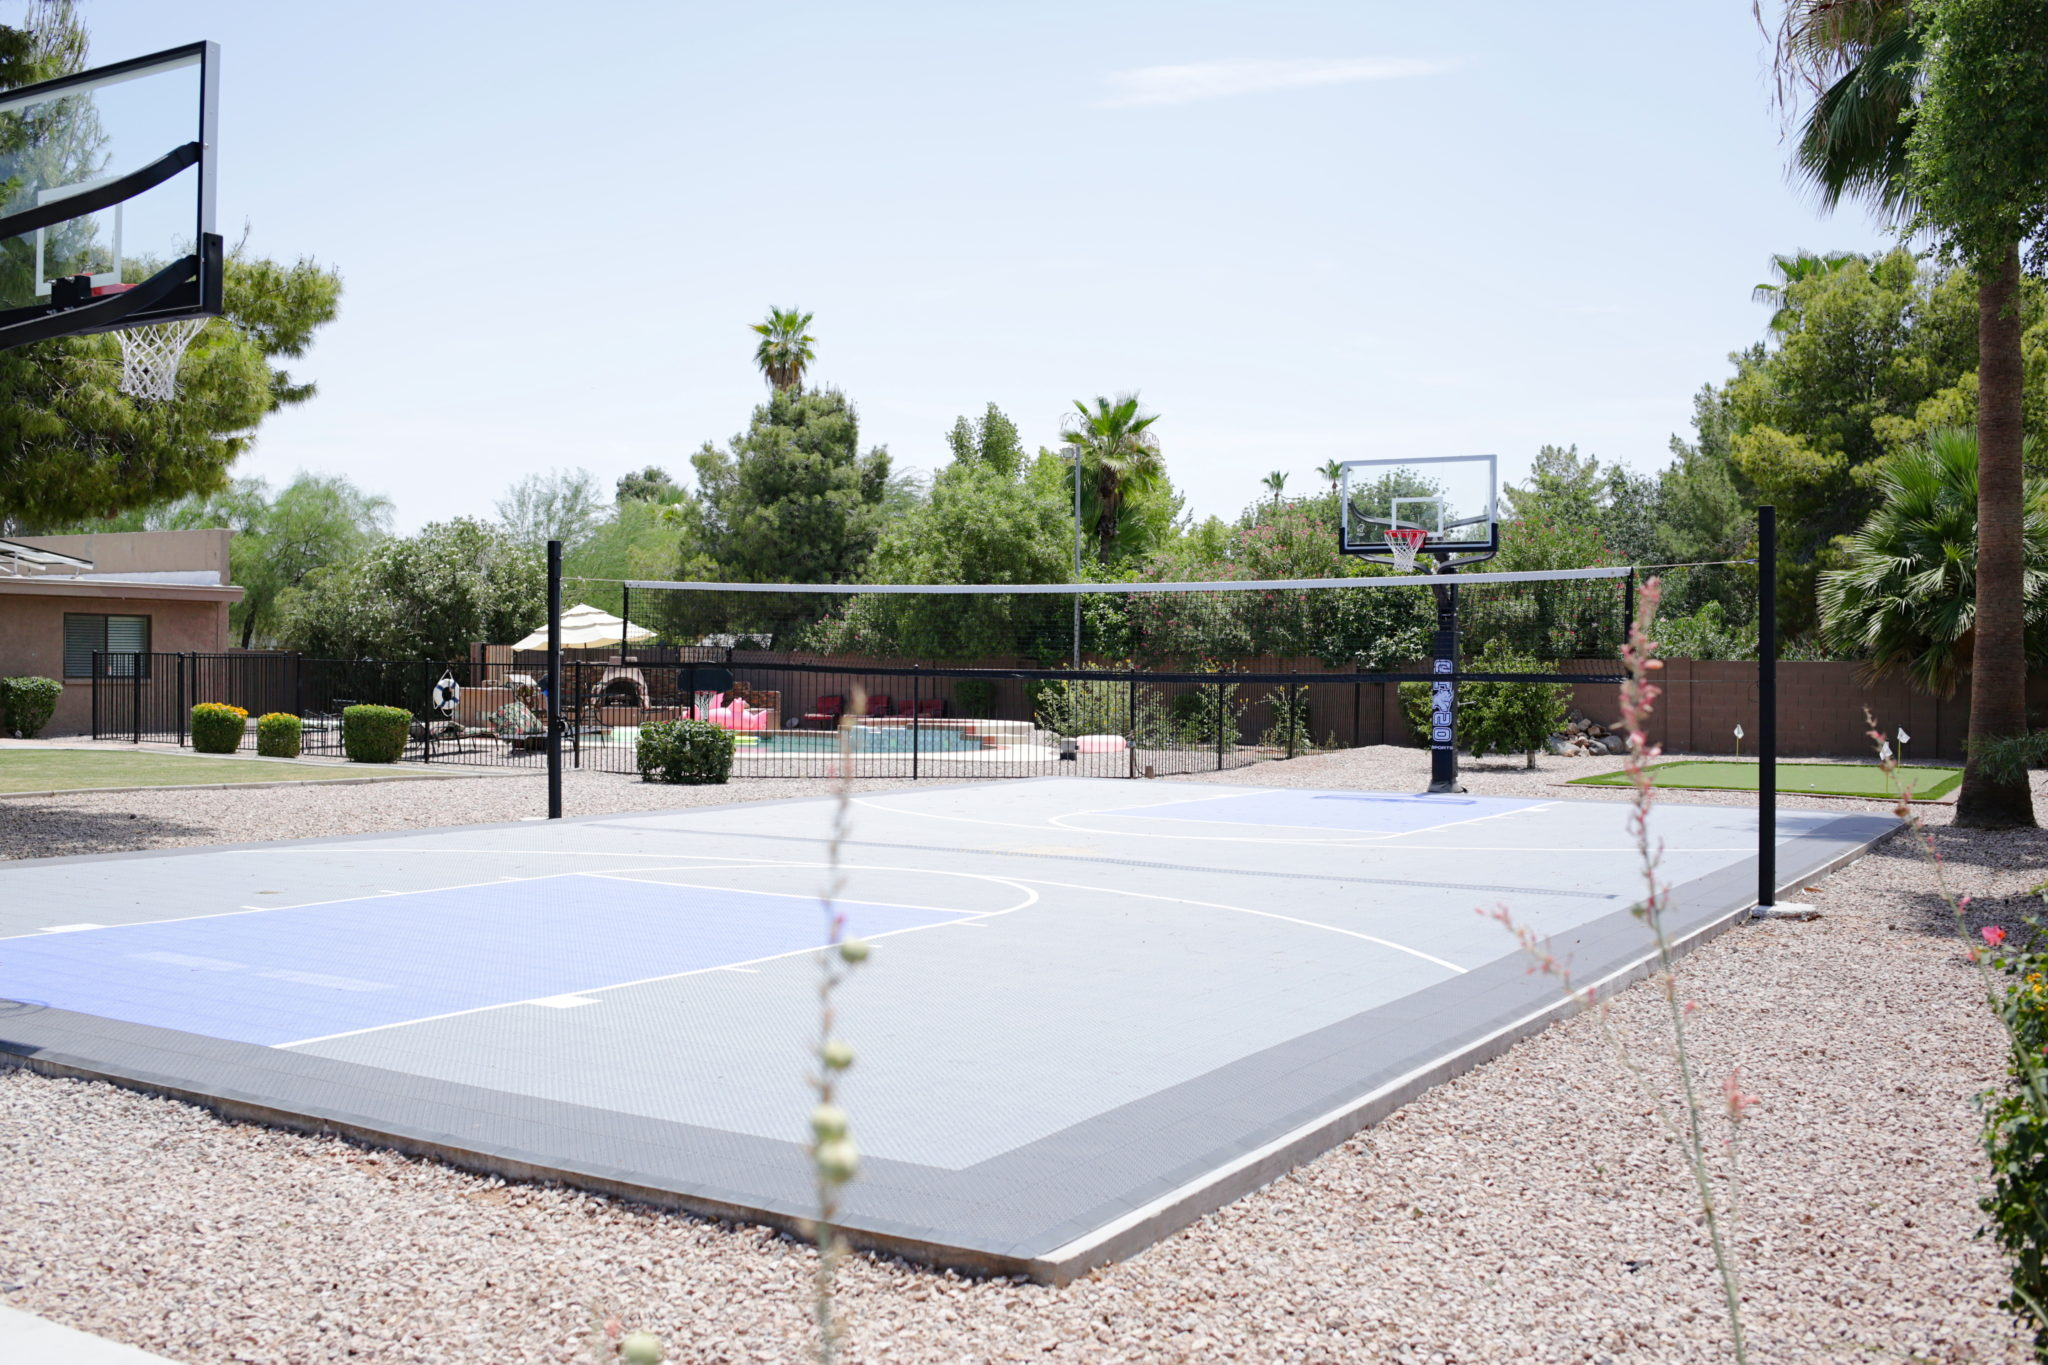 Scottsdale Recovery Center Basketball Court